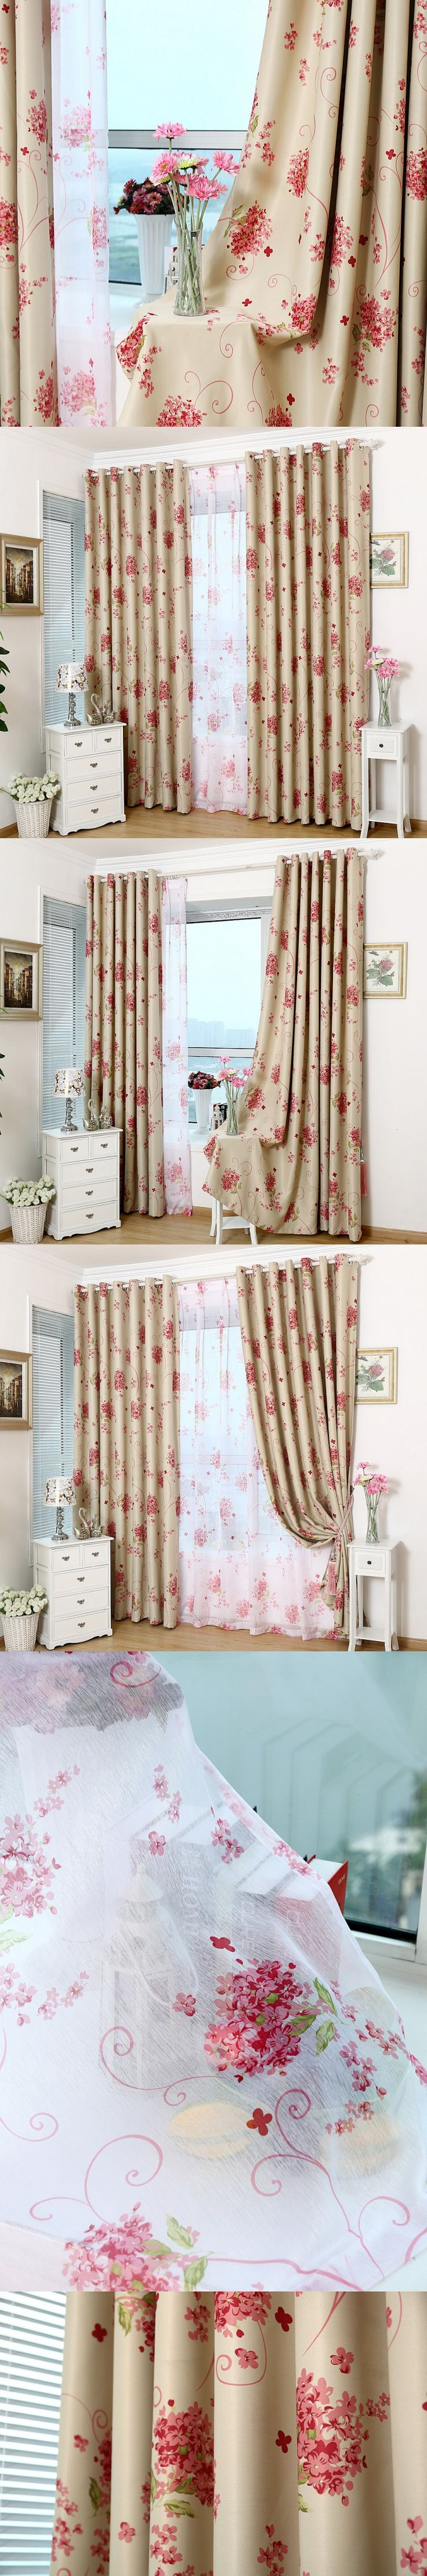 Rustic voile fabric curtain red floral blackout cloth ready-made window screens customize tulle $12.5